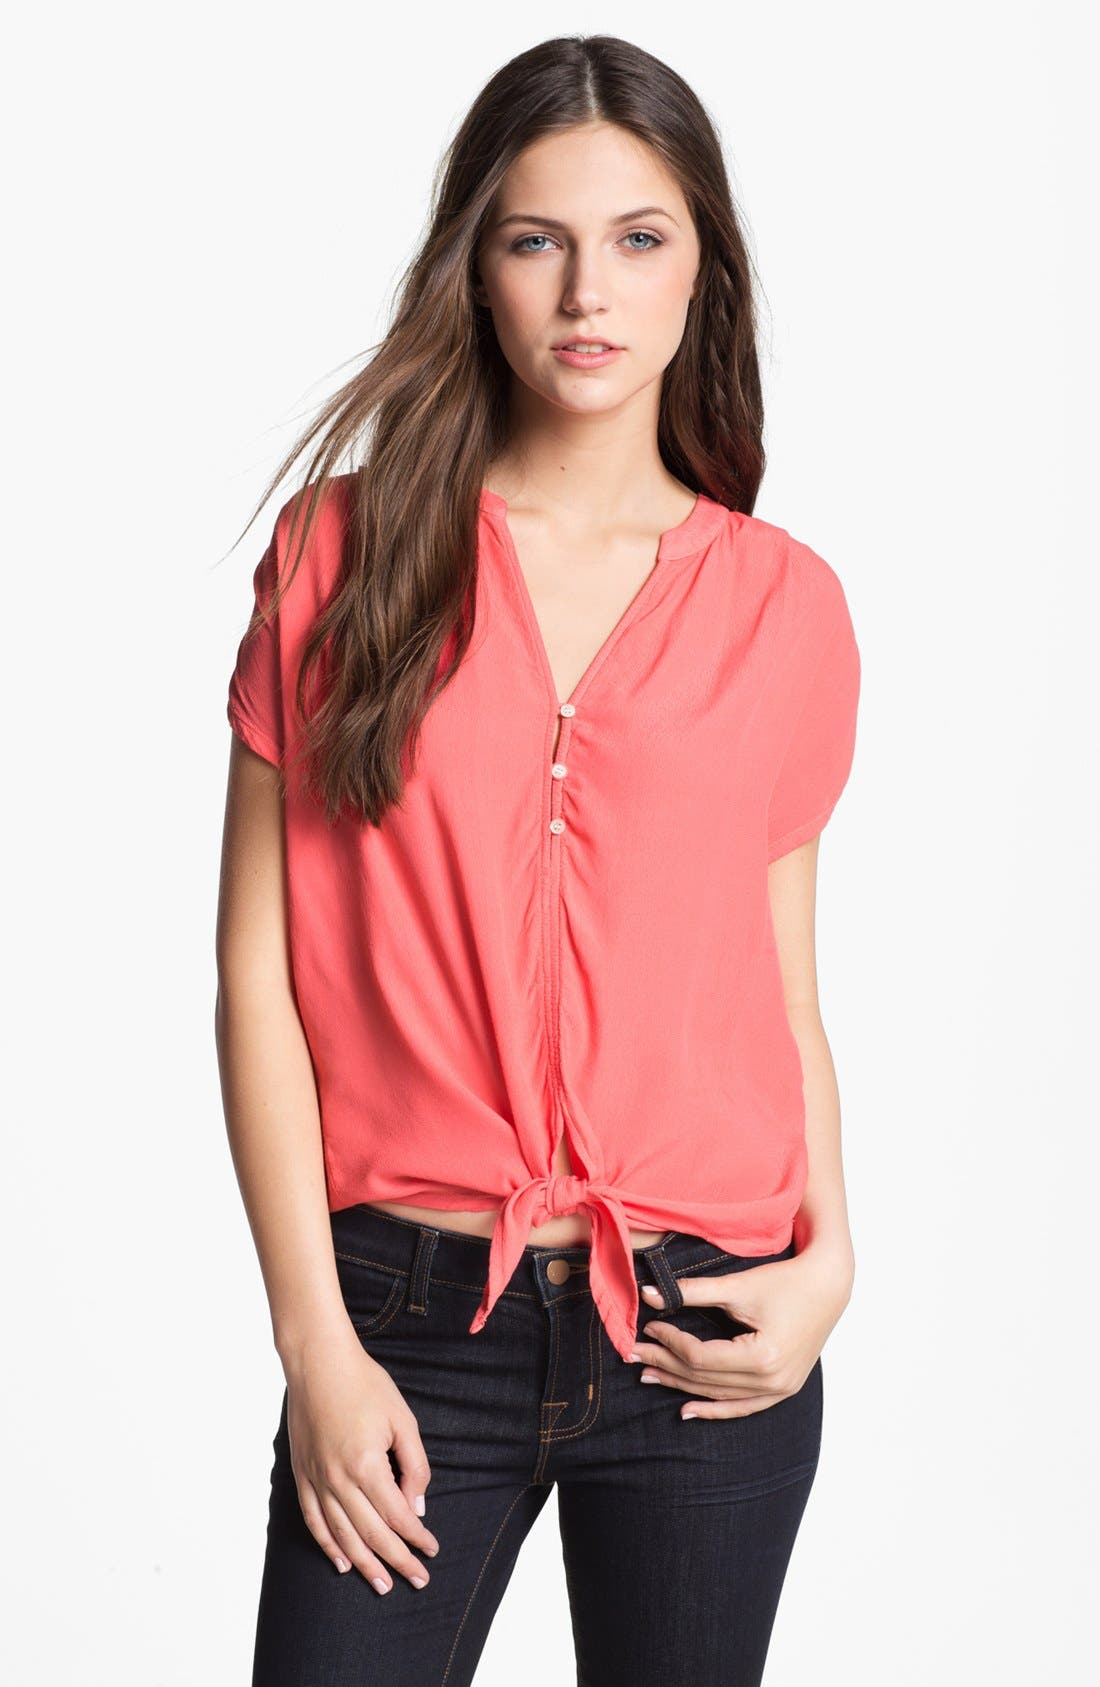 Main Image - Soft Joie 'Chally' Tie Front Top